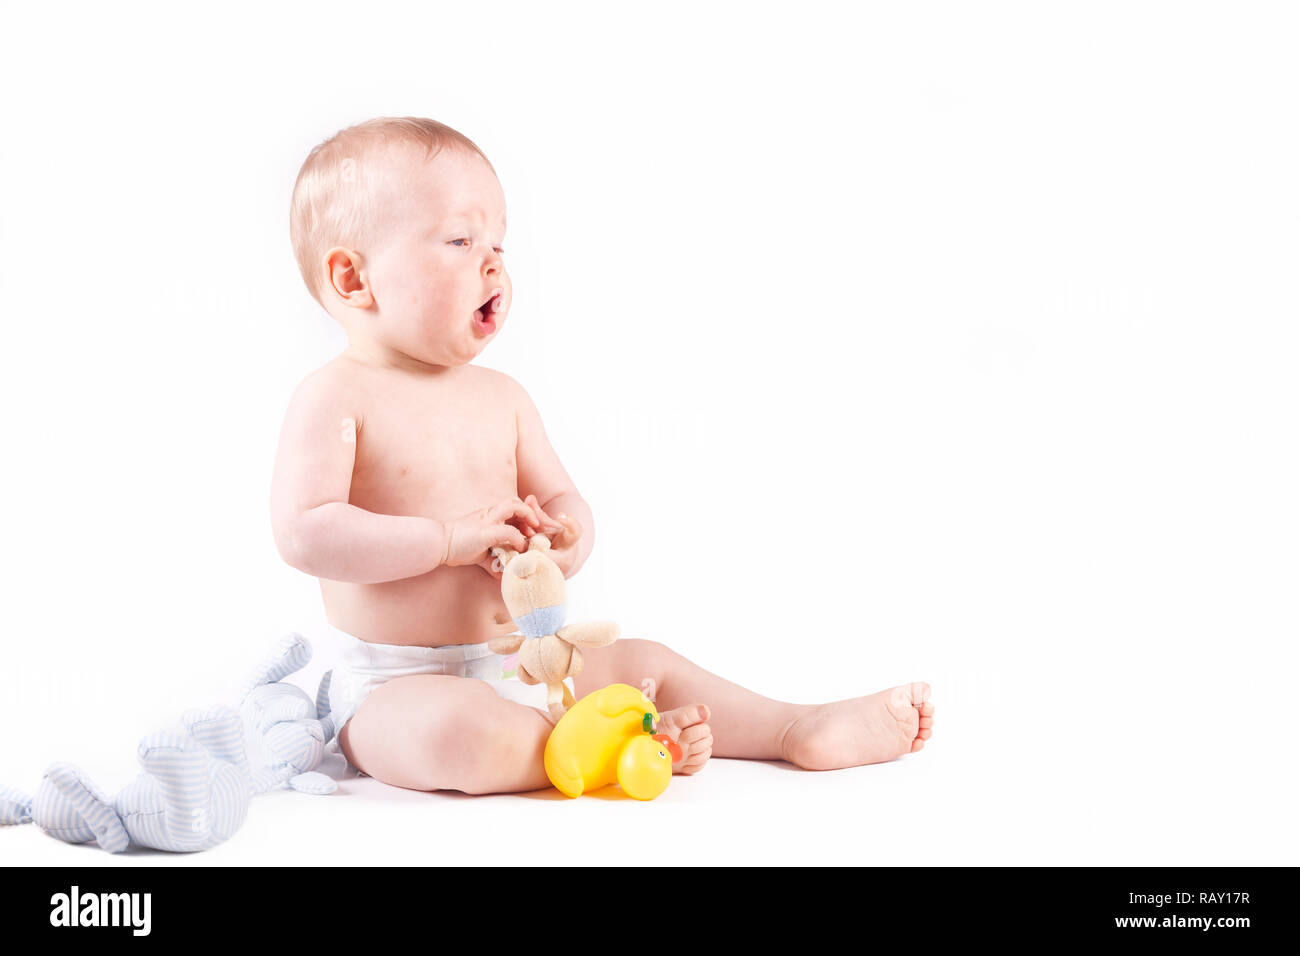 Sneezing, Hiccuping 9 months old baby boy sitting on the ground with toys - studio shot - Stock Image